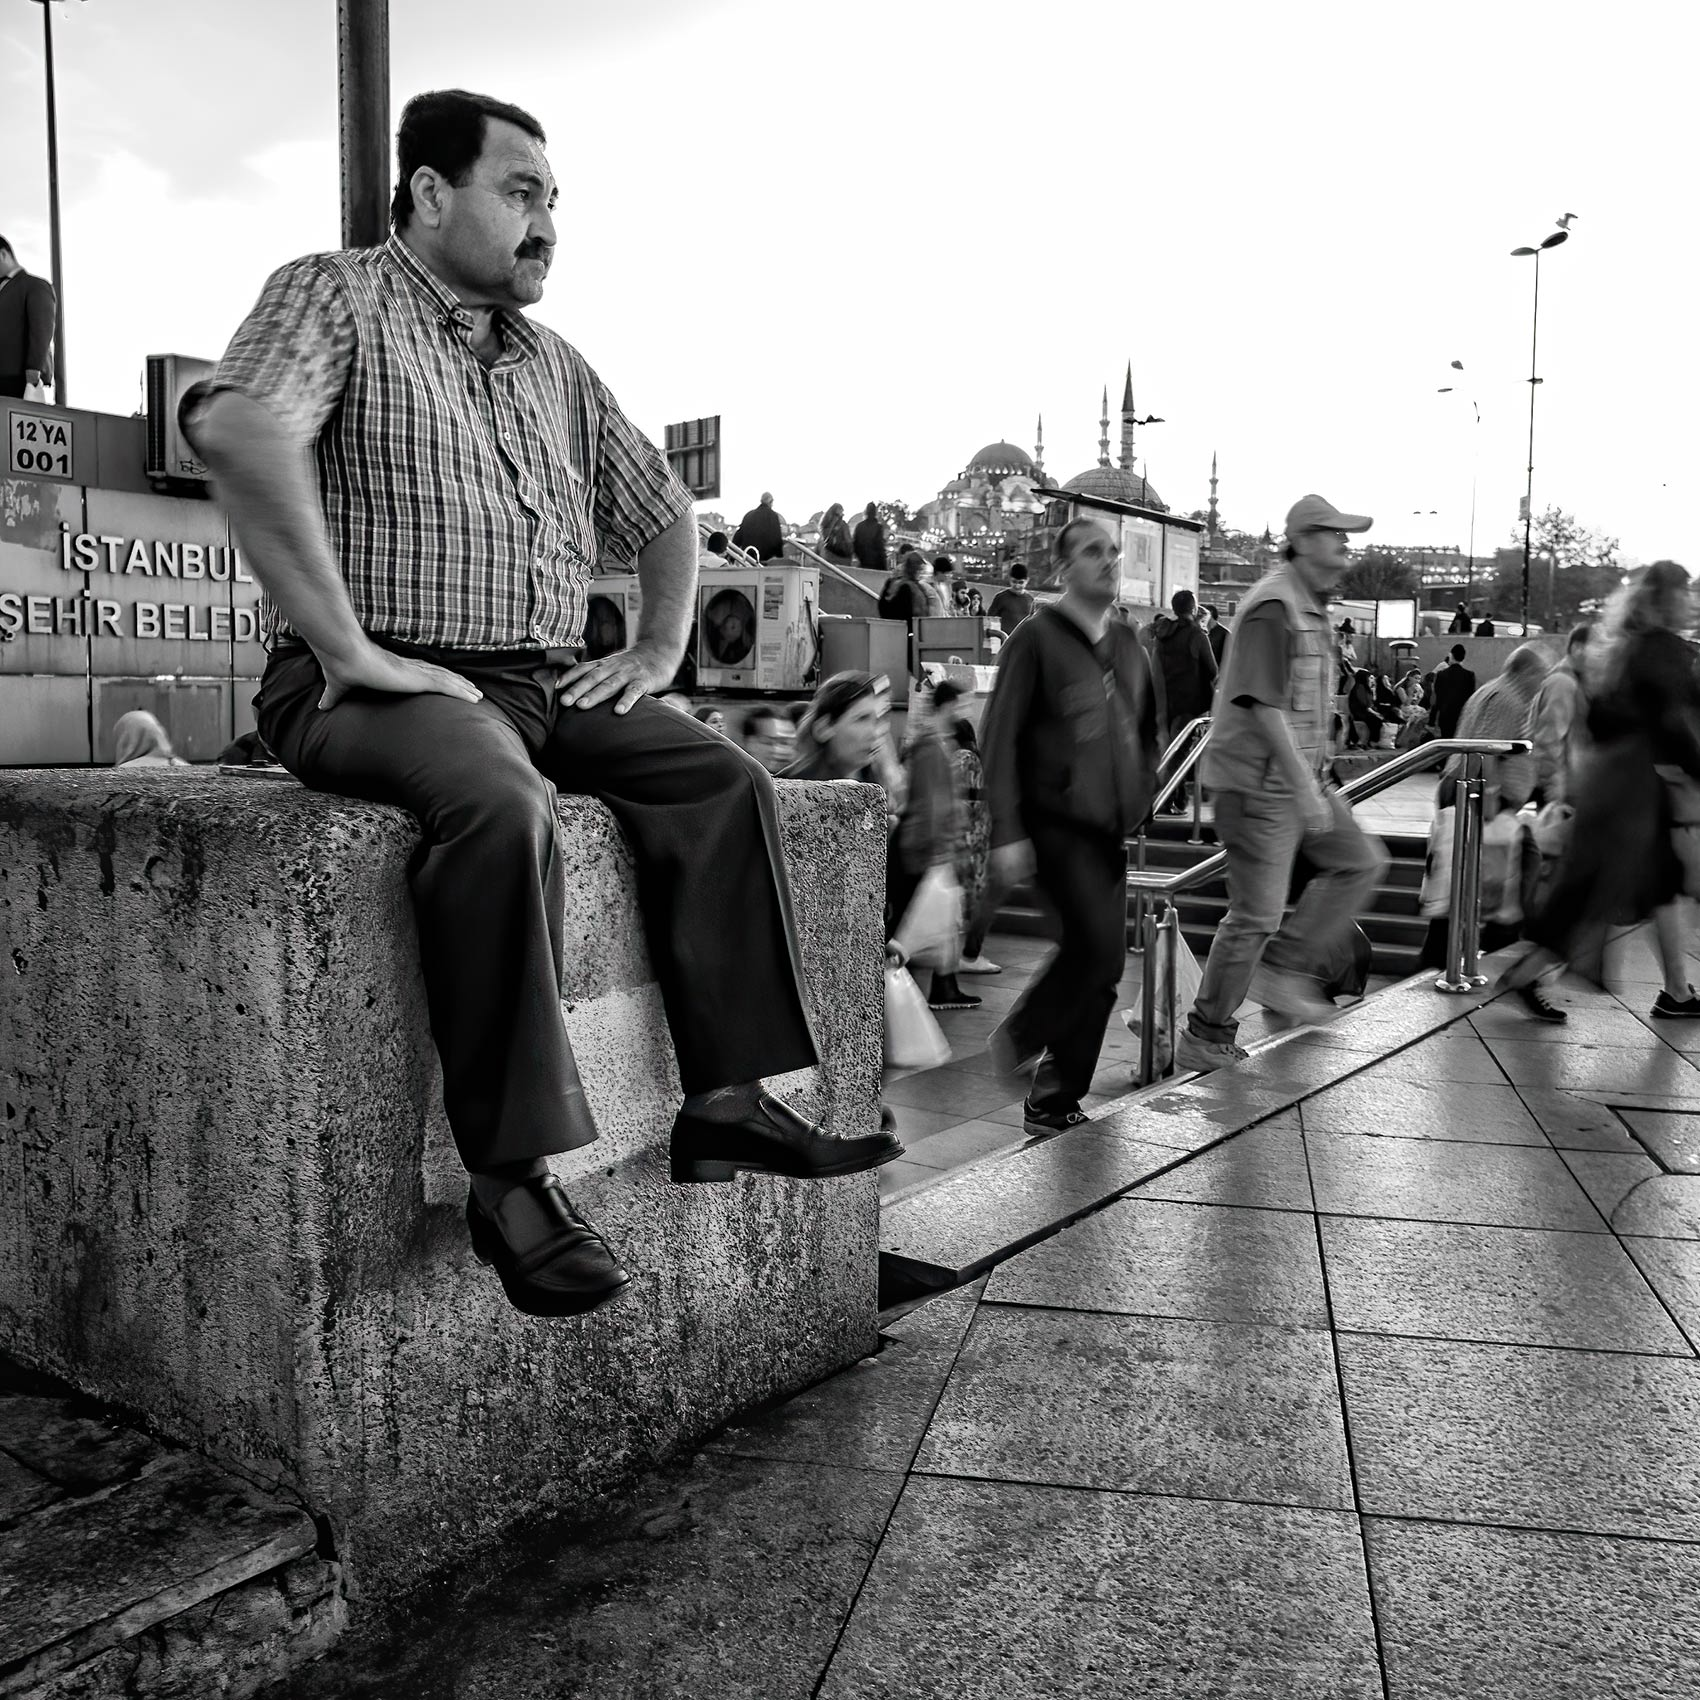 a-man-watches-over-the-harbour-in-the-eminonu-district-in-istanbul-turkey